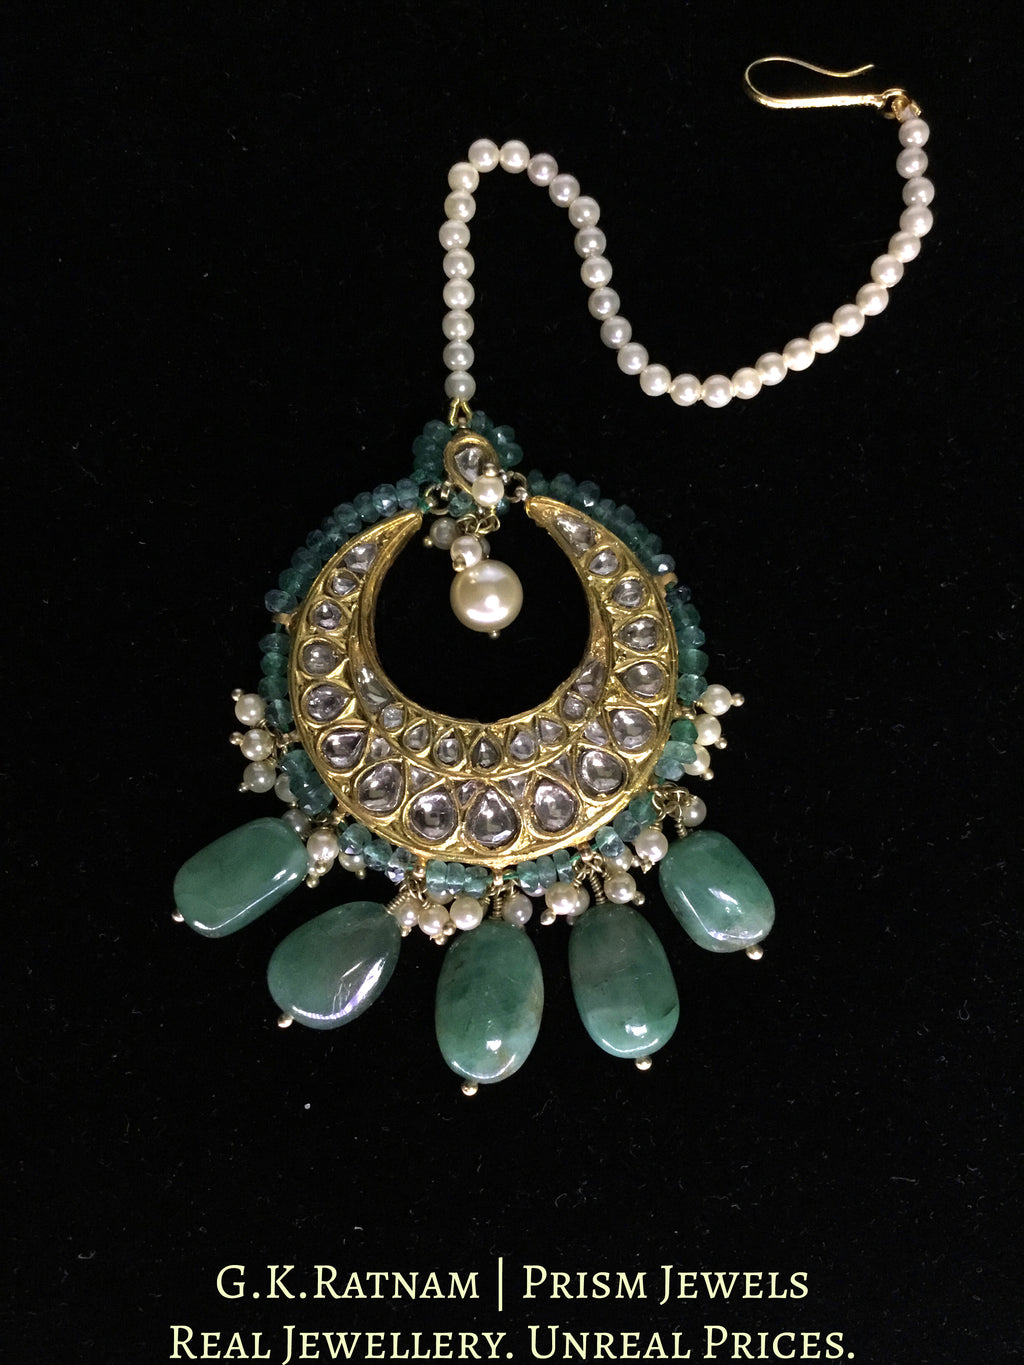 23k Gold and Diamond Polki Maang Tikka strung with Natural Emeralds